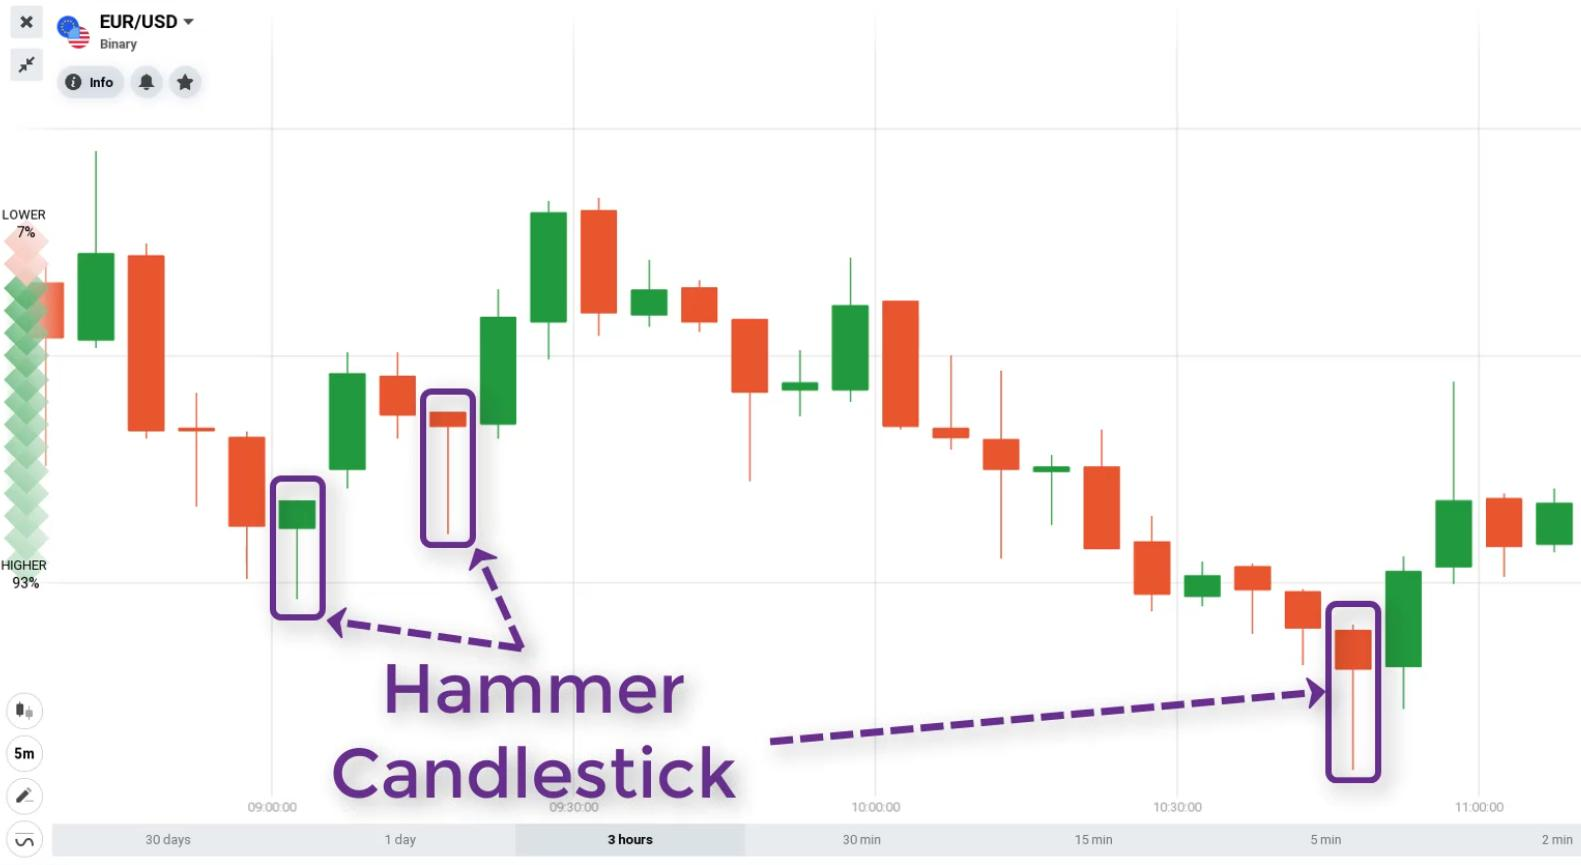 What is Hammer candlestick?